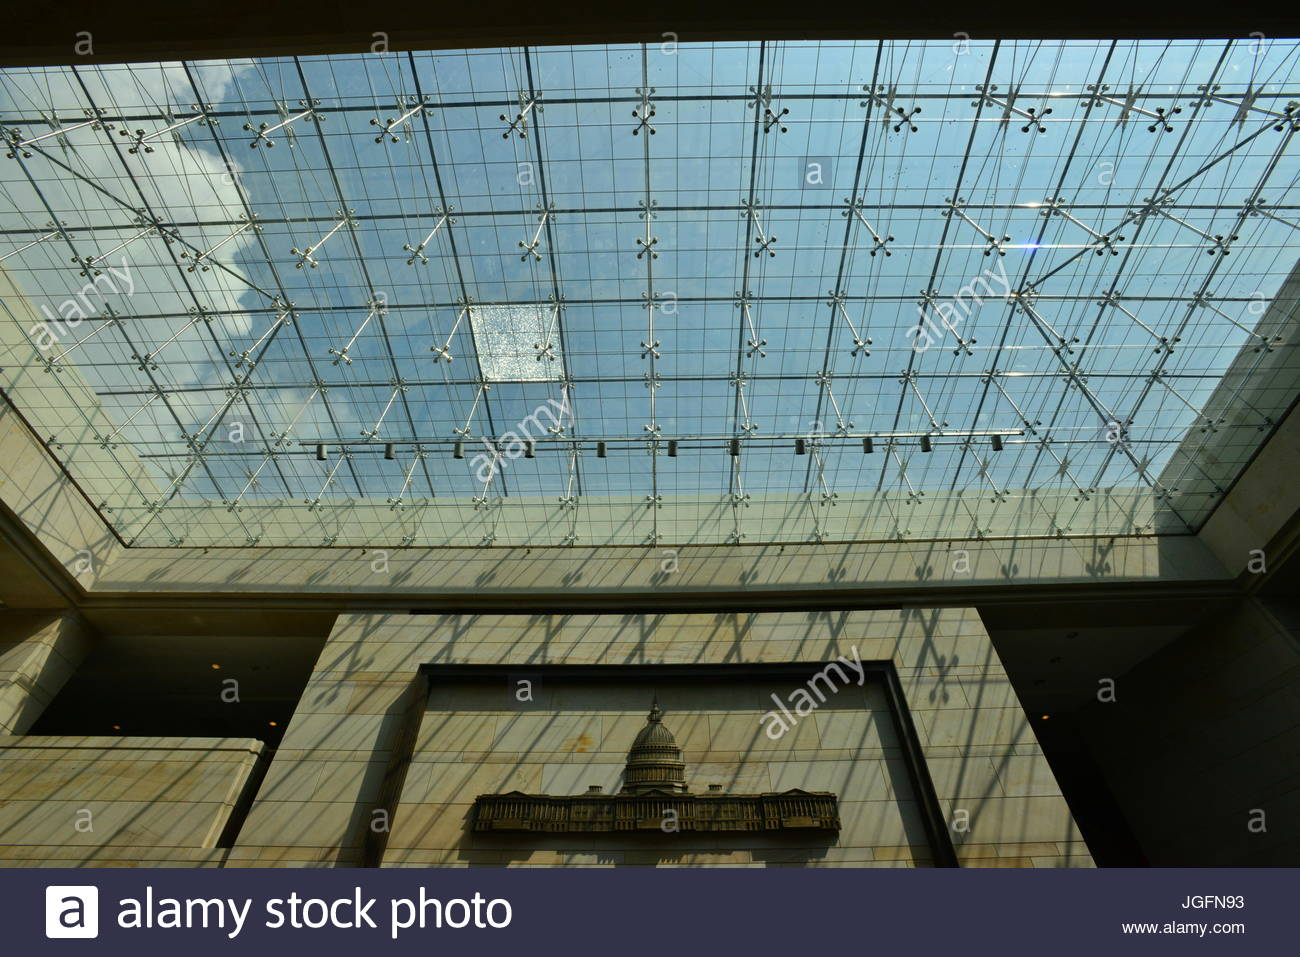 A skylight in the U.S. Capitol Building. - Stock Image